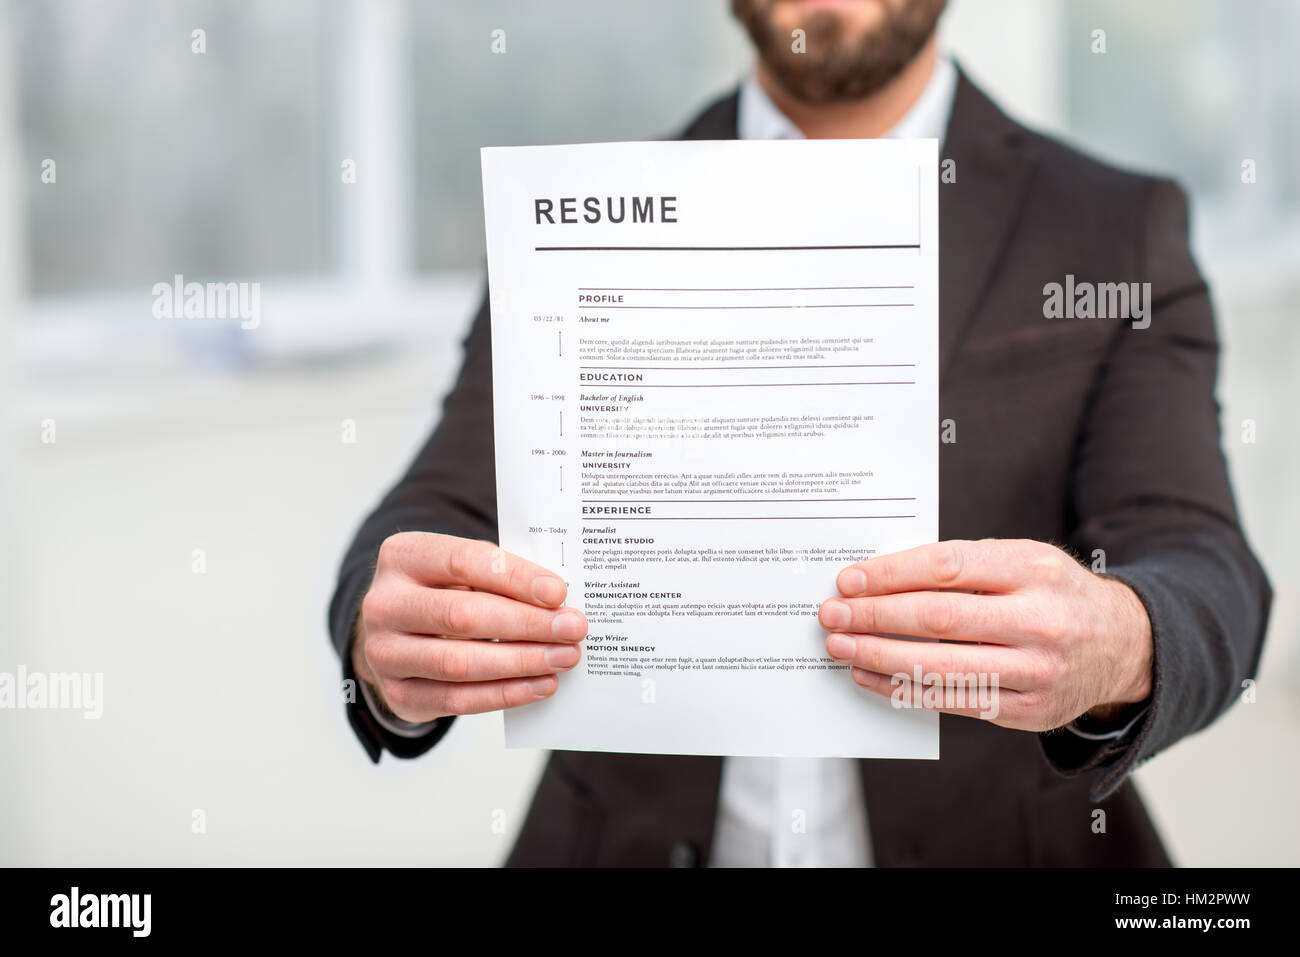 Man In The Suit Holding Resume For Job Hiring Close Up View Focused